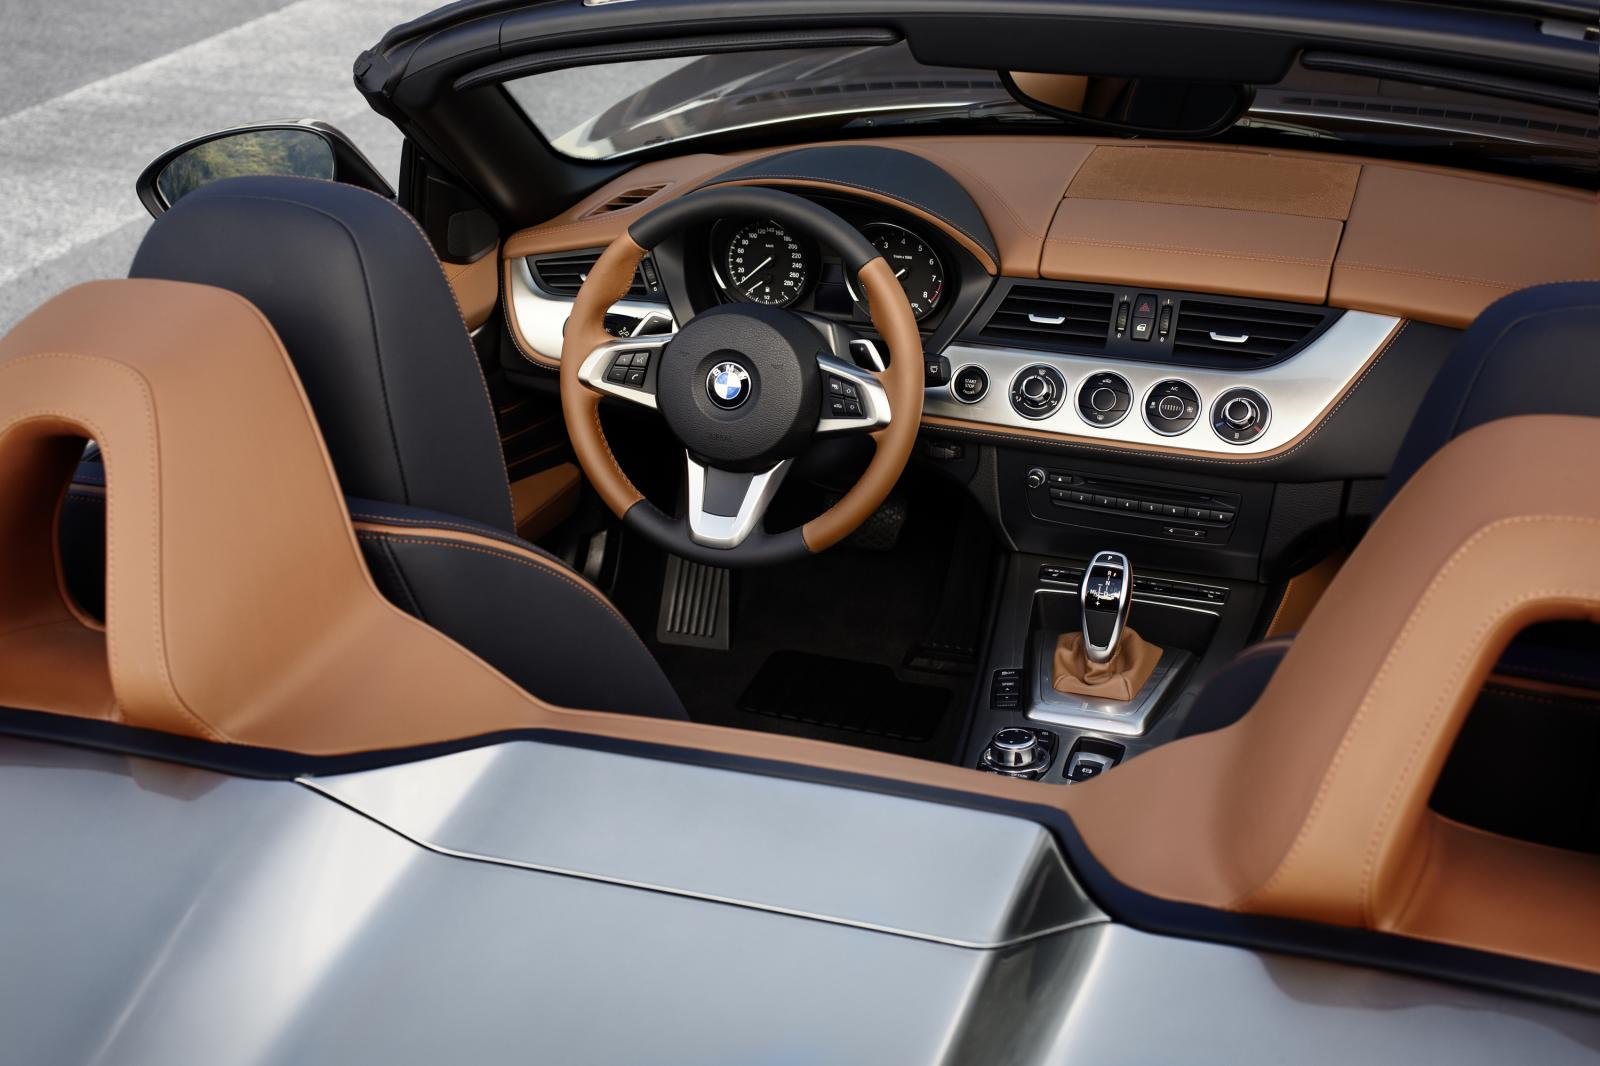 Bmw Cars News Zagato Roadster Unveiled At Pebble Beach